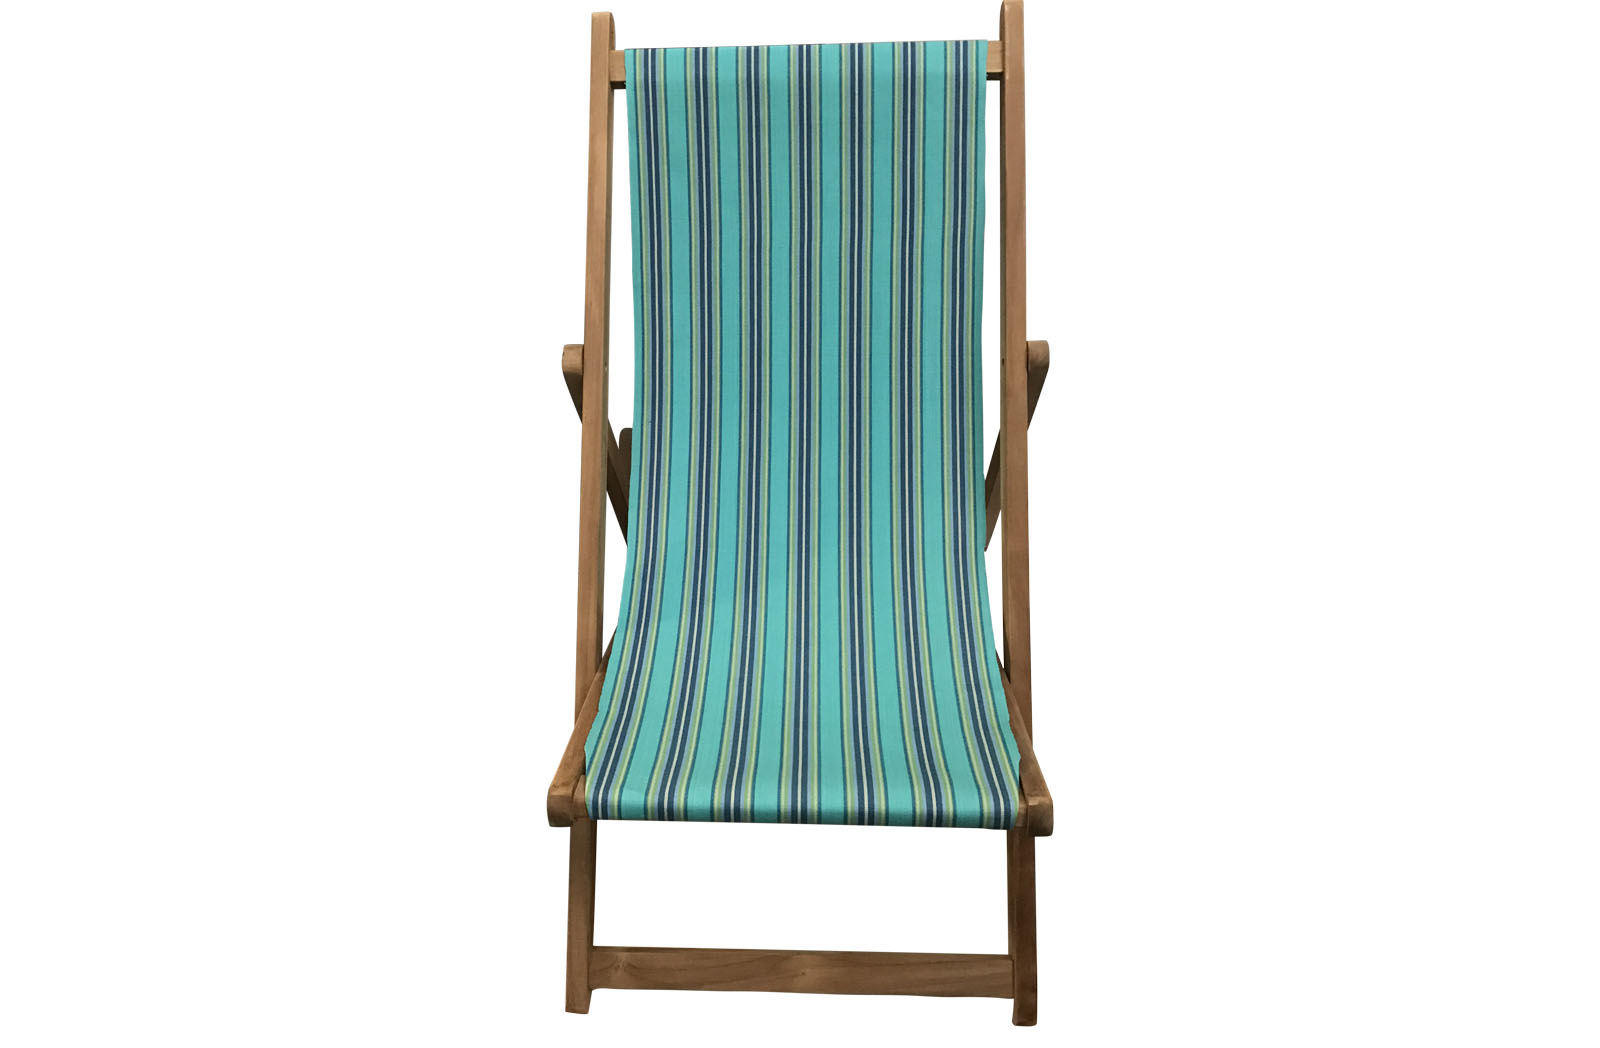 Turquoise Navy Stripe Deckchairs Wooden Folding Deck